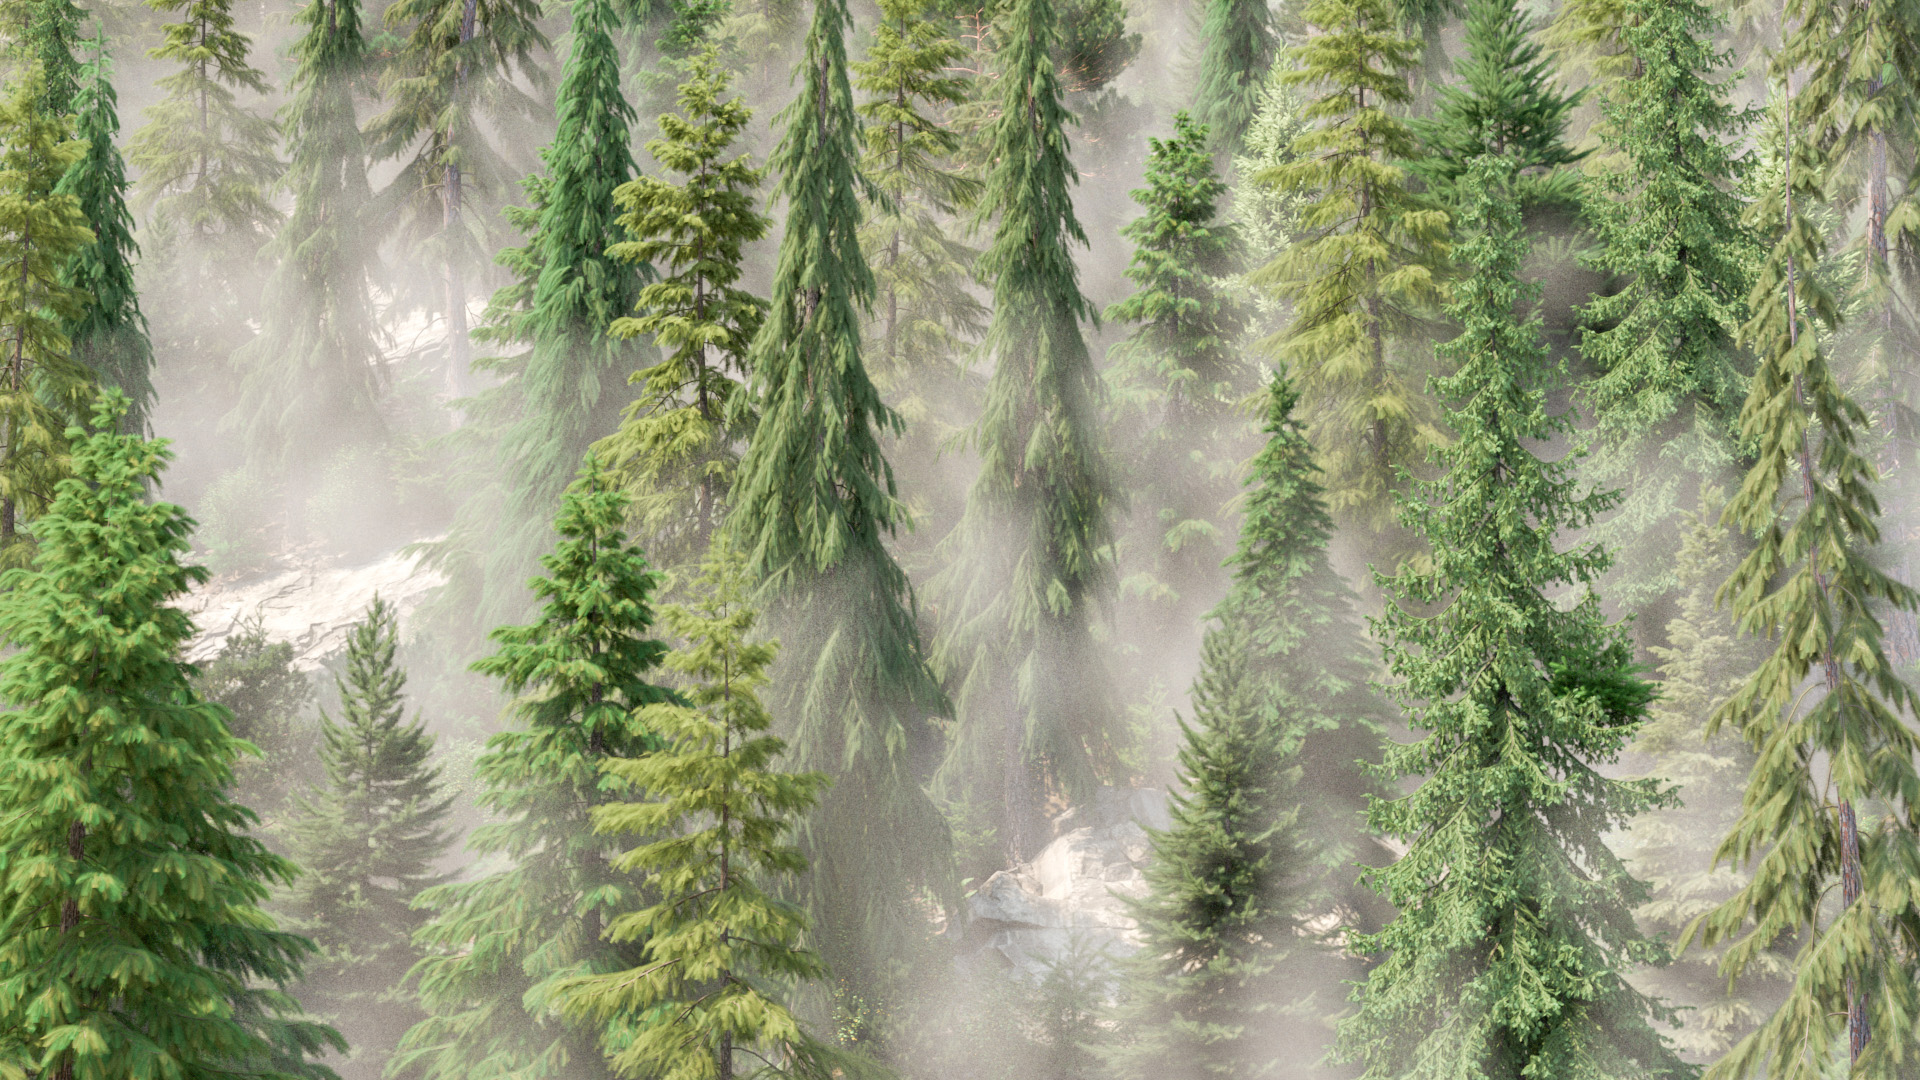 Figure 18: In-progress test render of the background forest with an initial version of mist and fog.